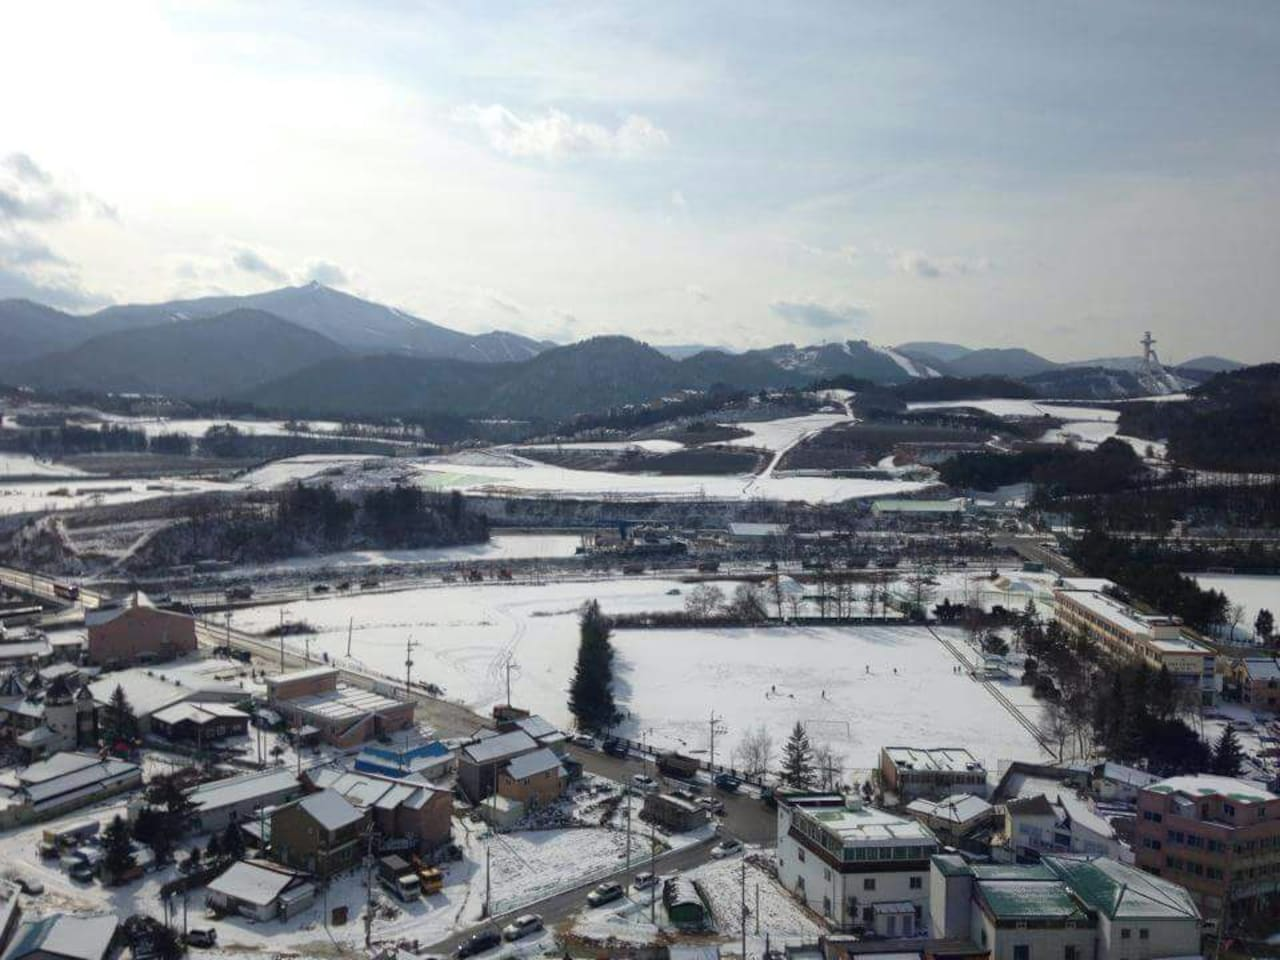 View from our window. Our house is in front of the Pyeongchang Snow Festival